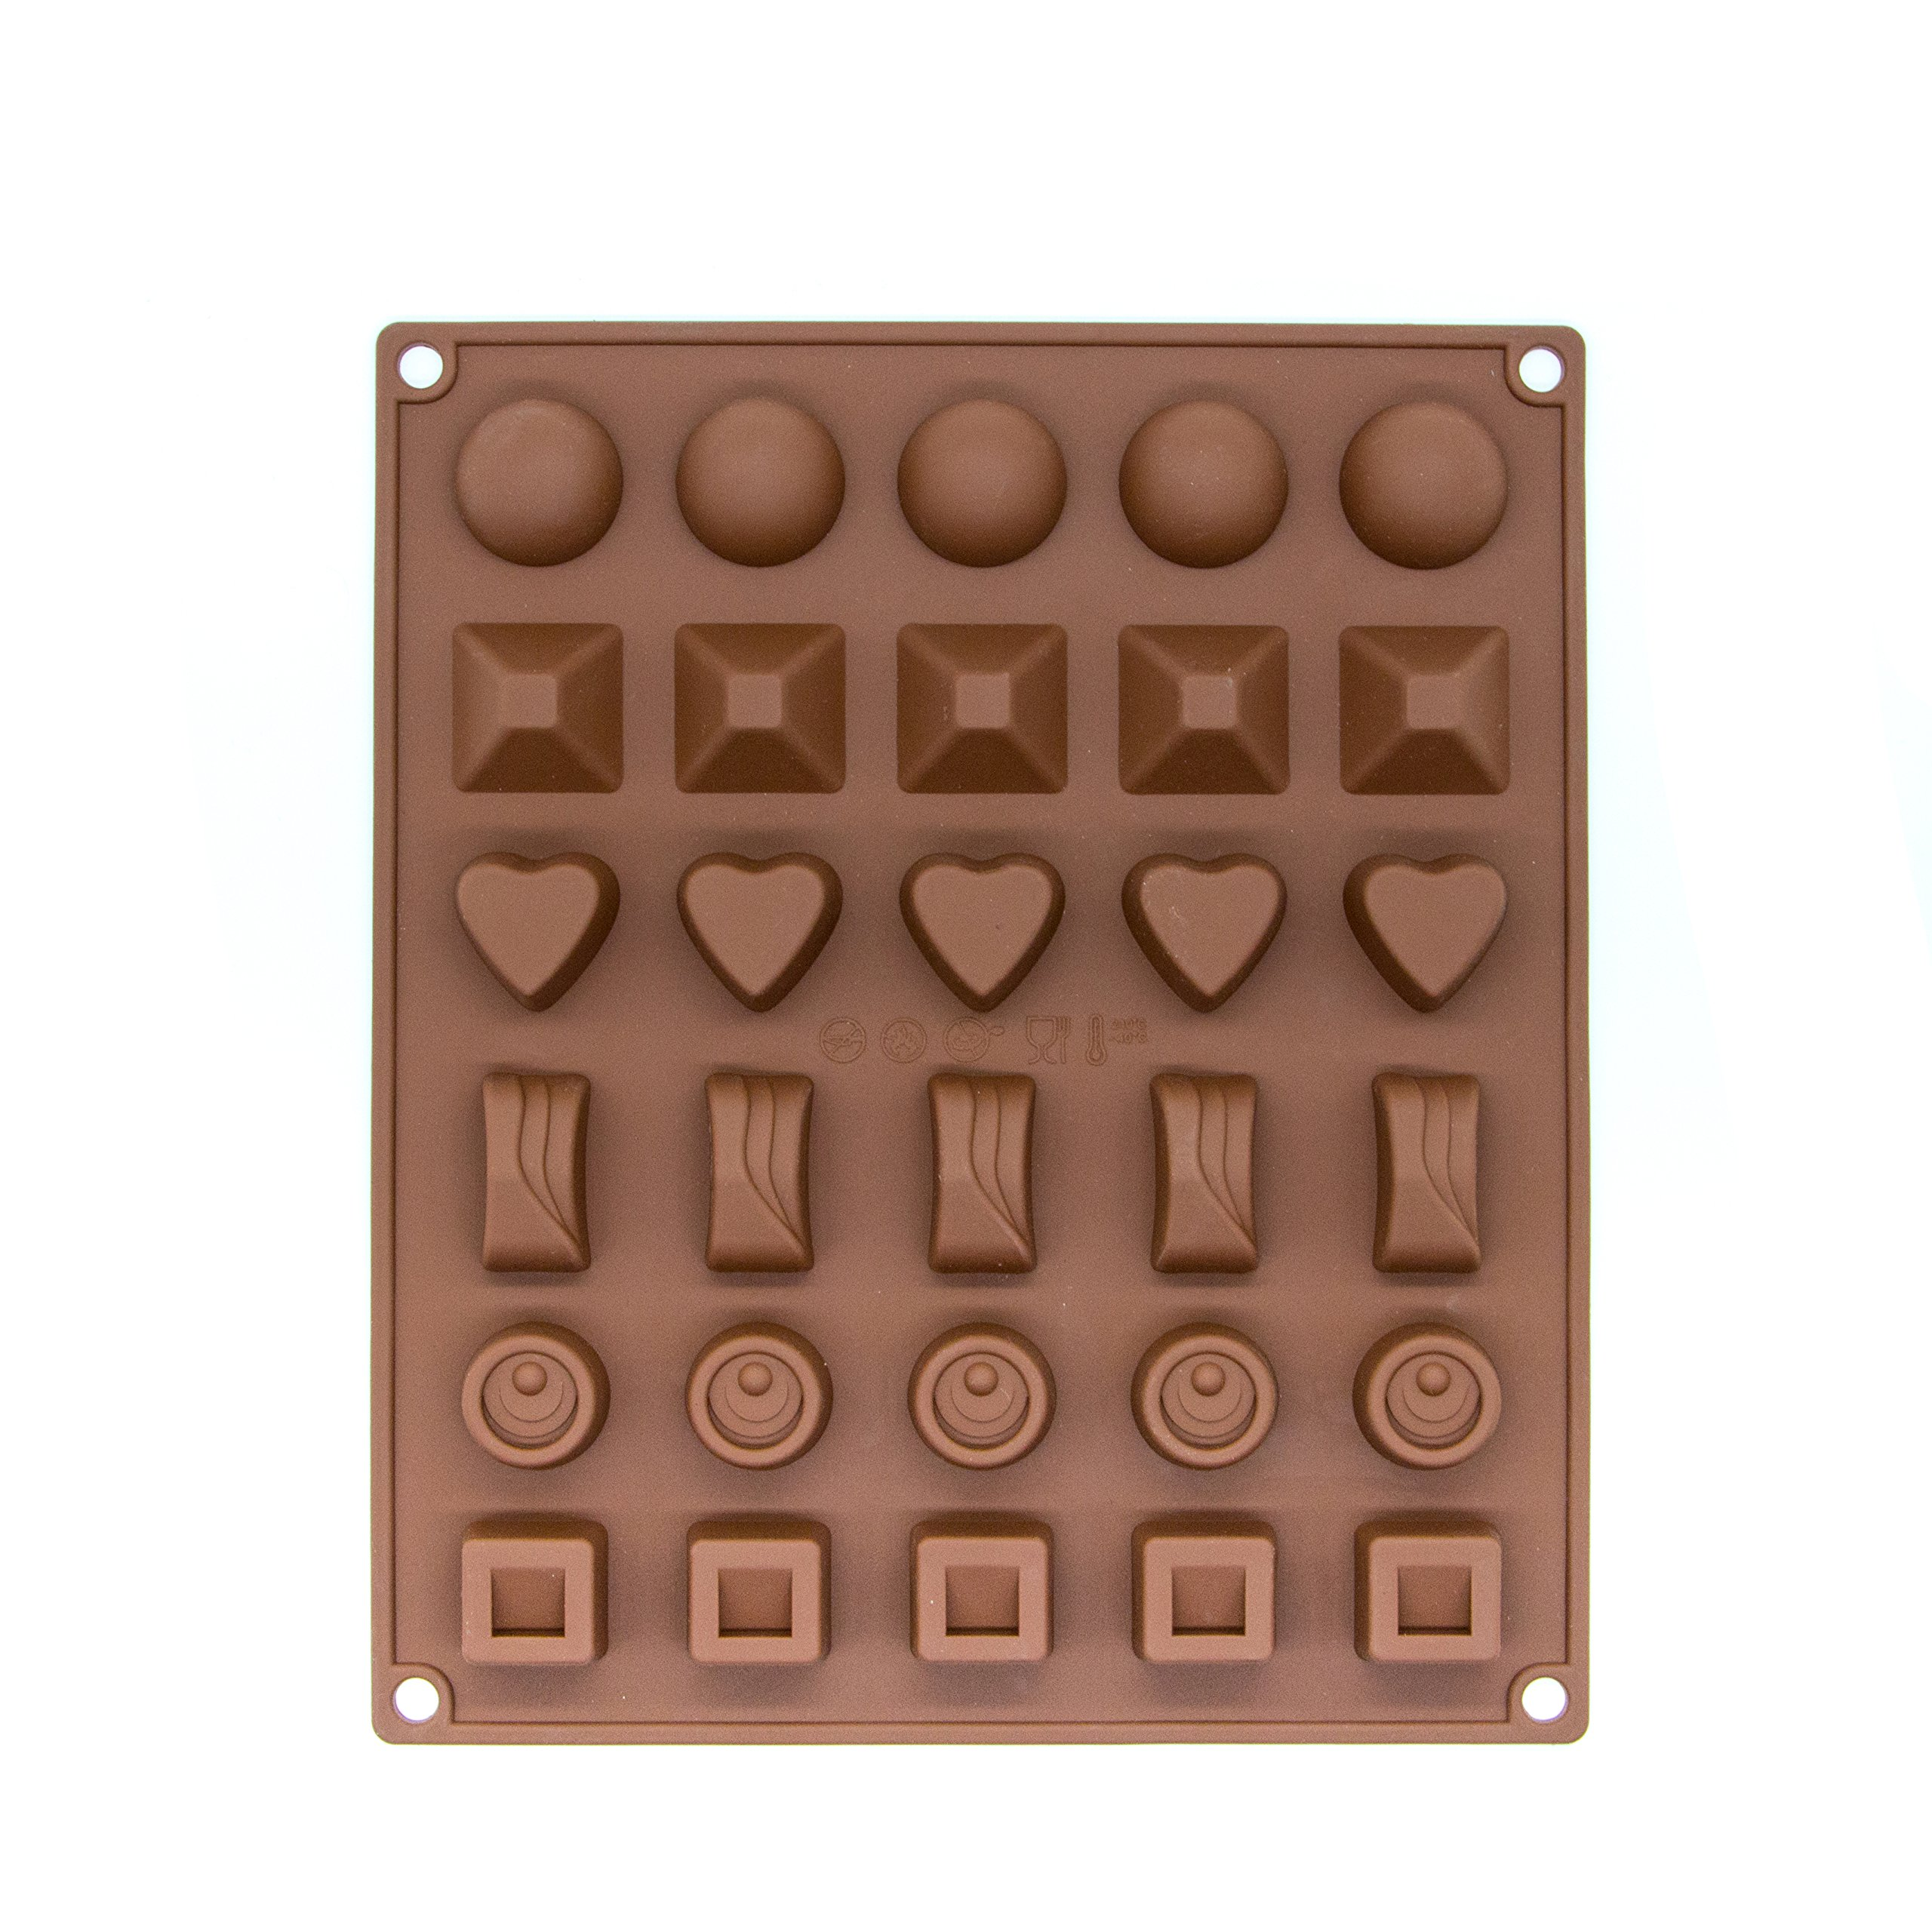 2 Pieces Silicone Baking Mold, Chocolate Candy Molds Robot for Making Cake Muffin Cupcake Gumdrop Jelly DIY